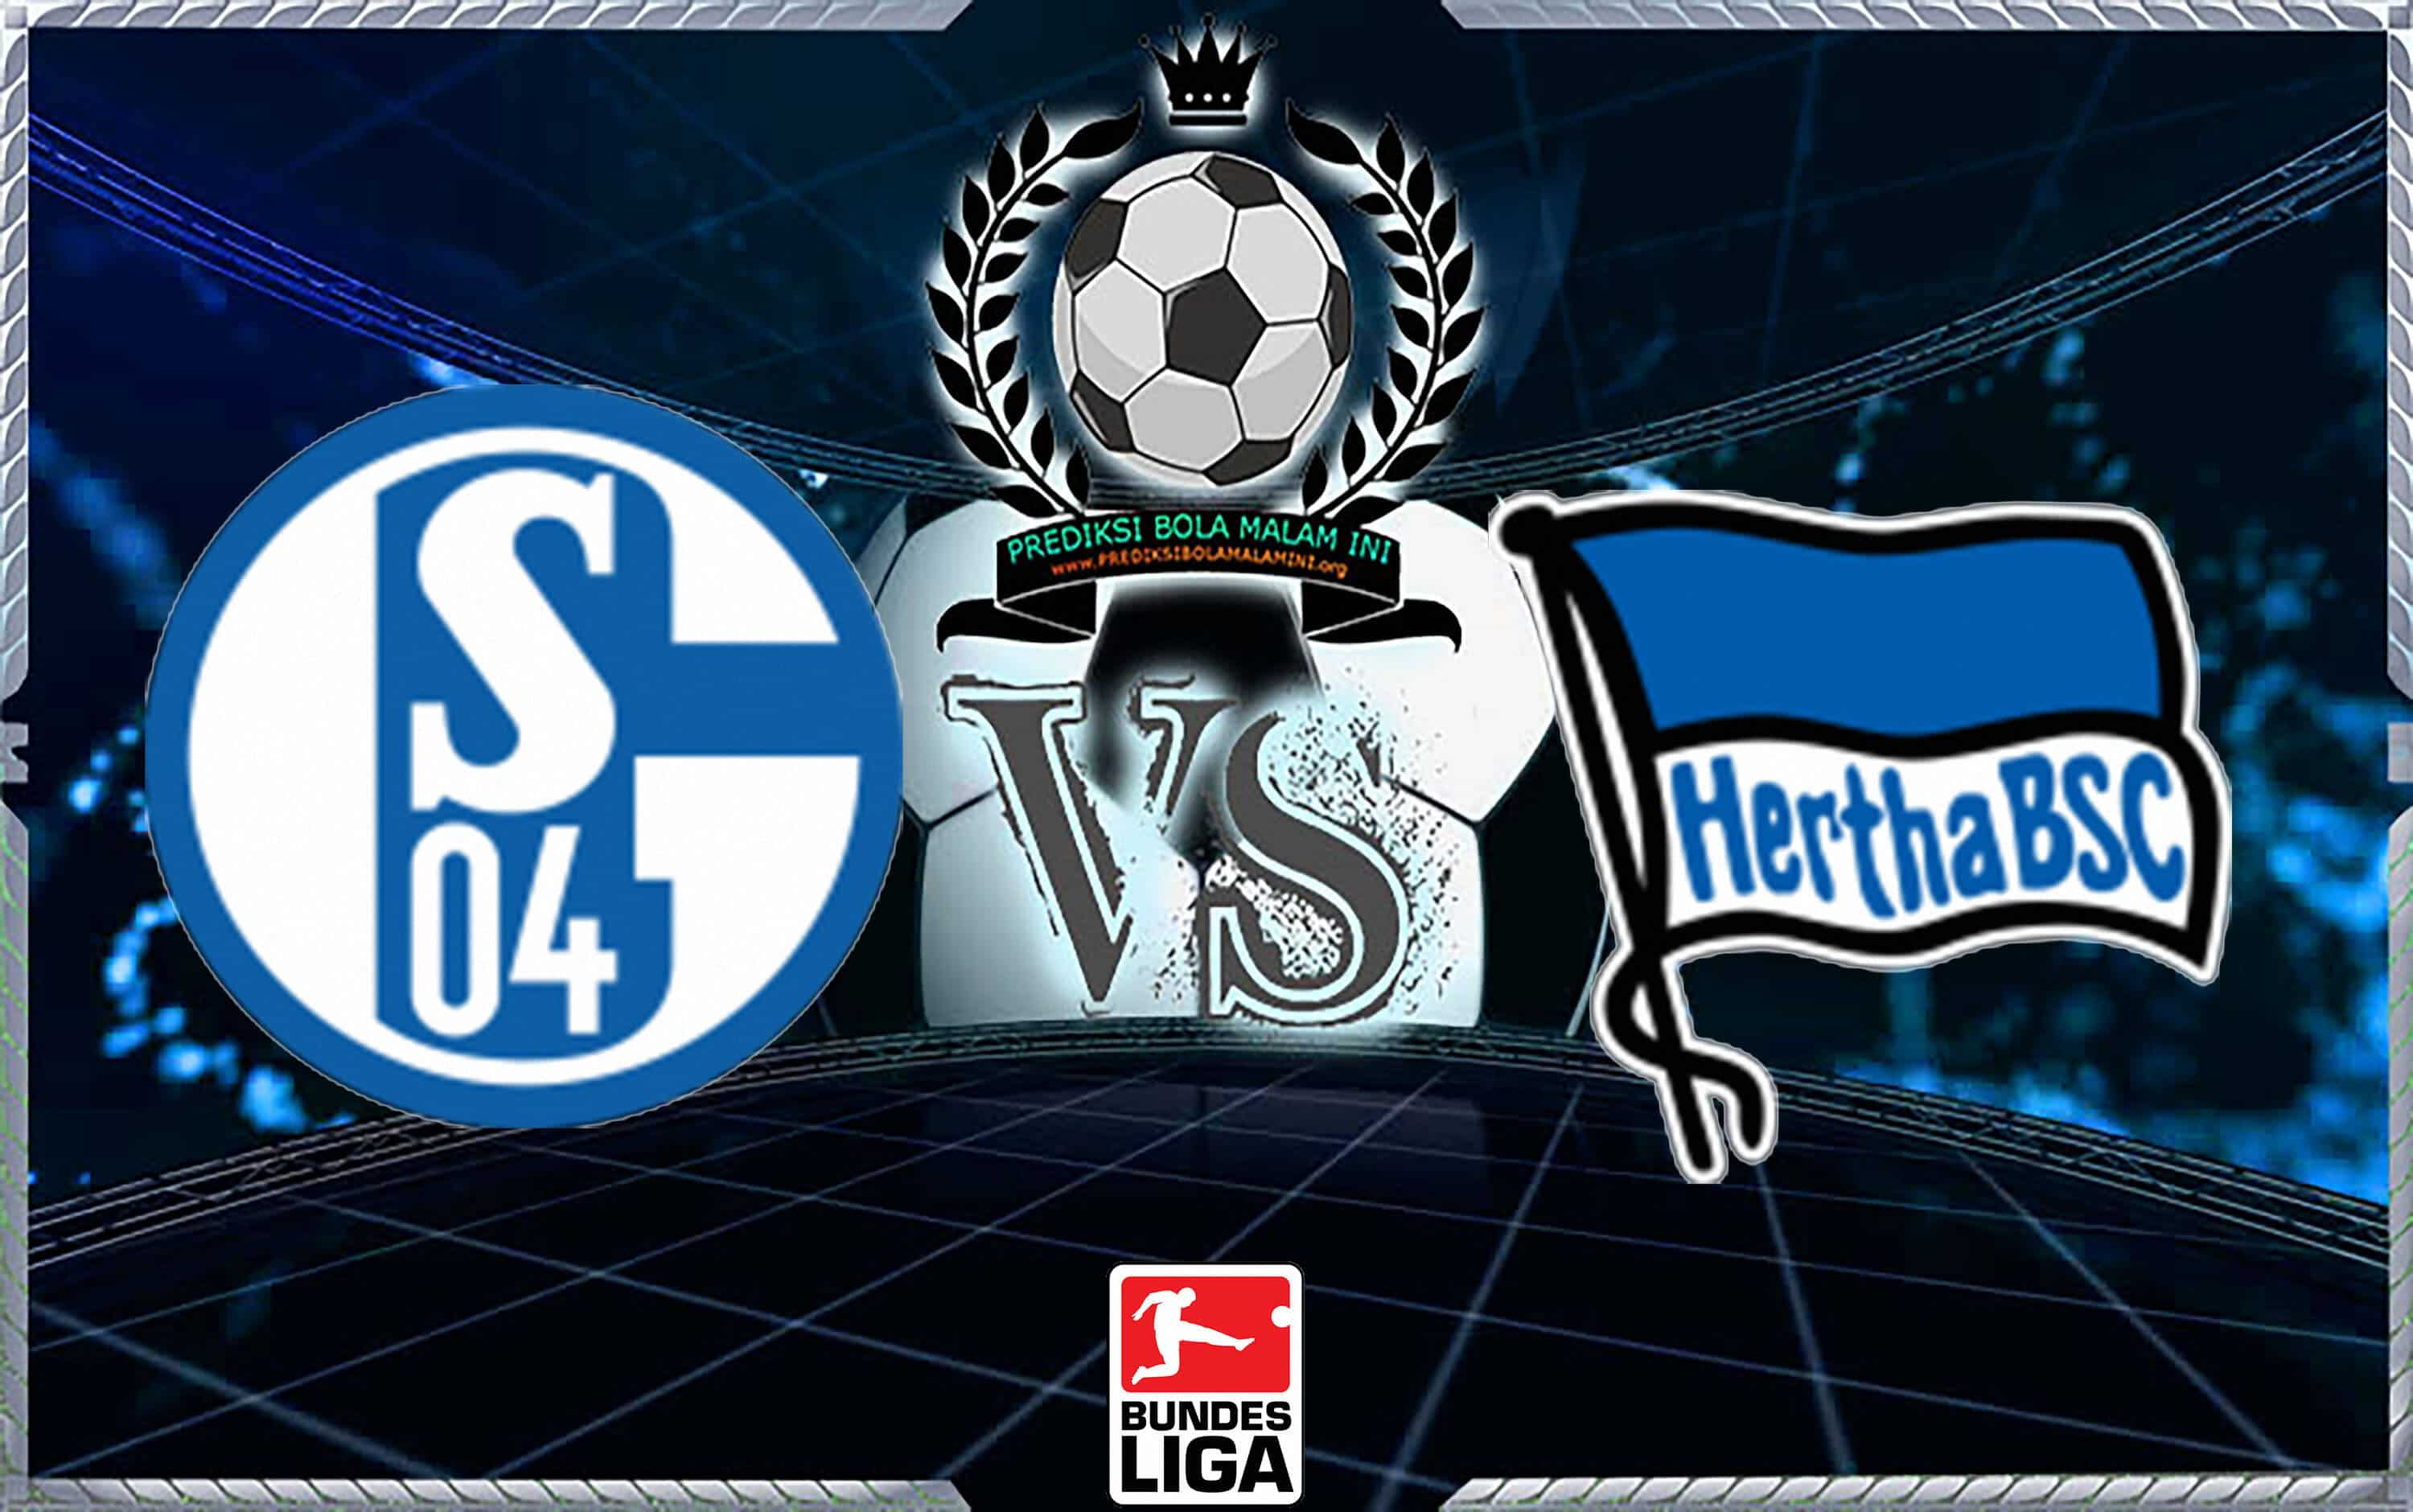 Memprediksi Spots SCHALKE 04 Vs HERTHA BSC 2 September 2018